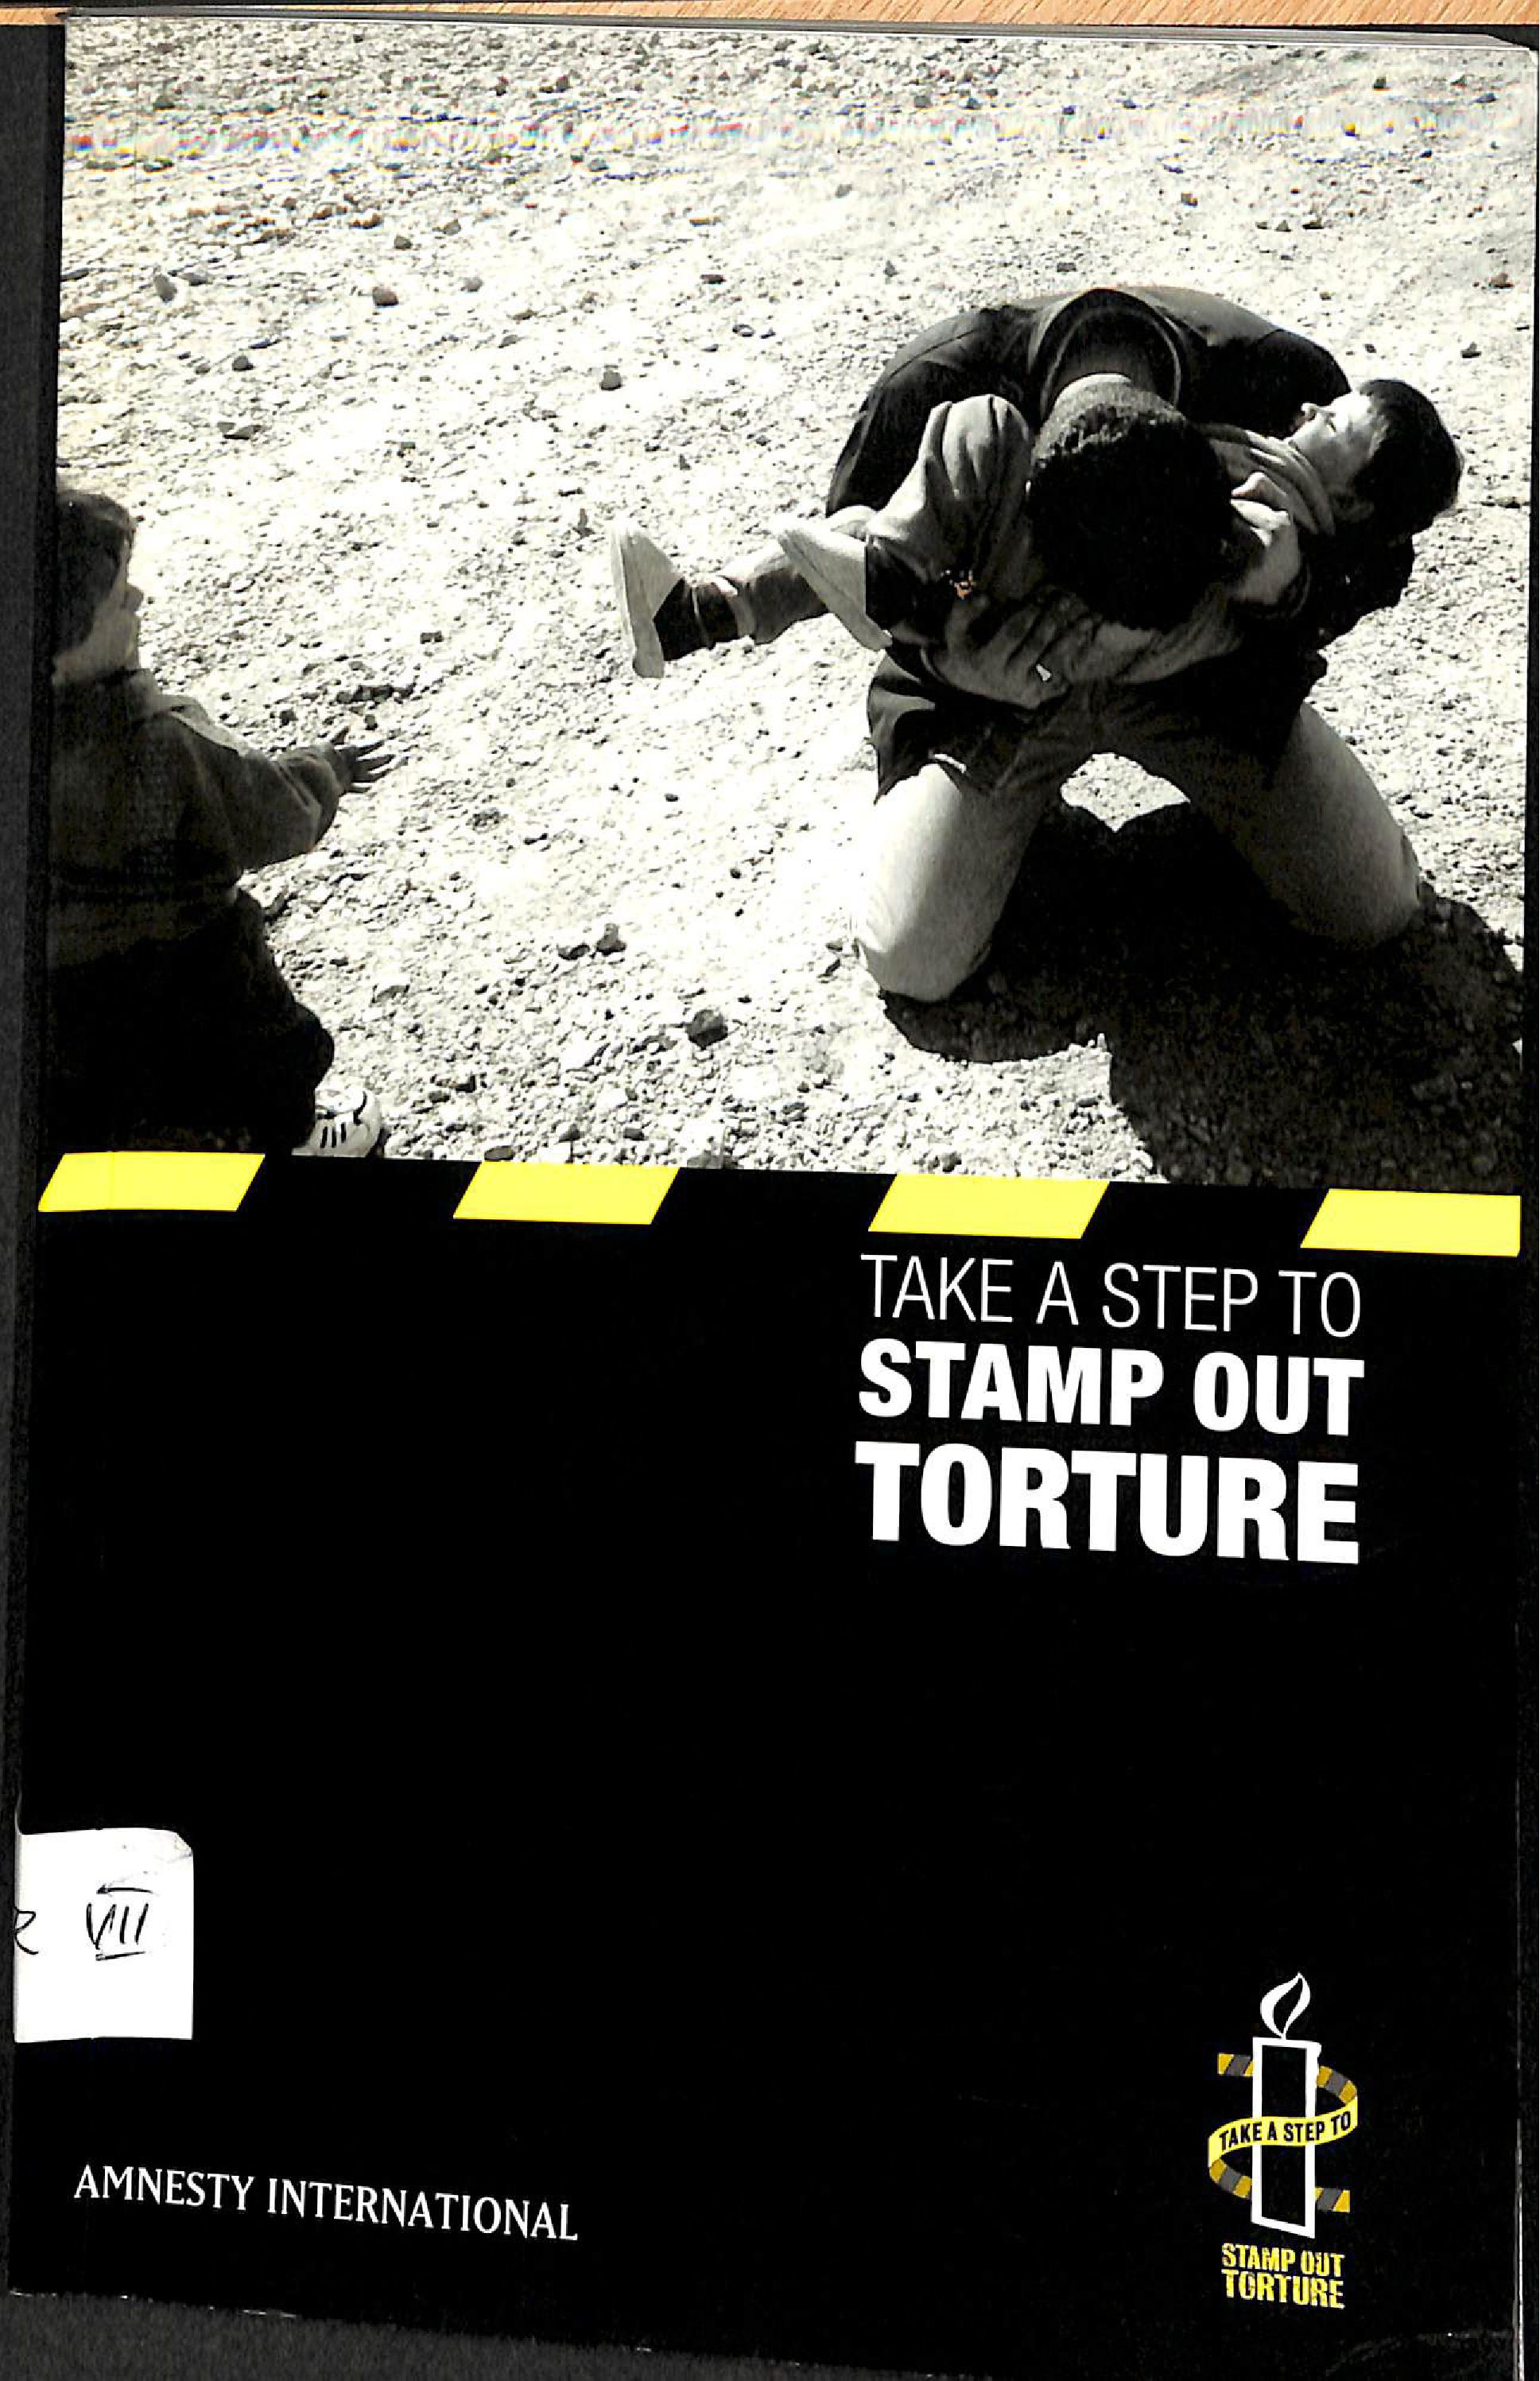 Take a step to stamp out torture